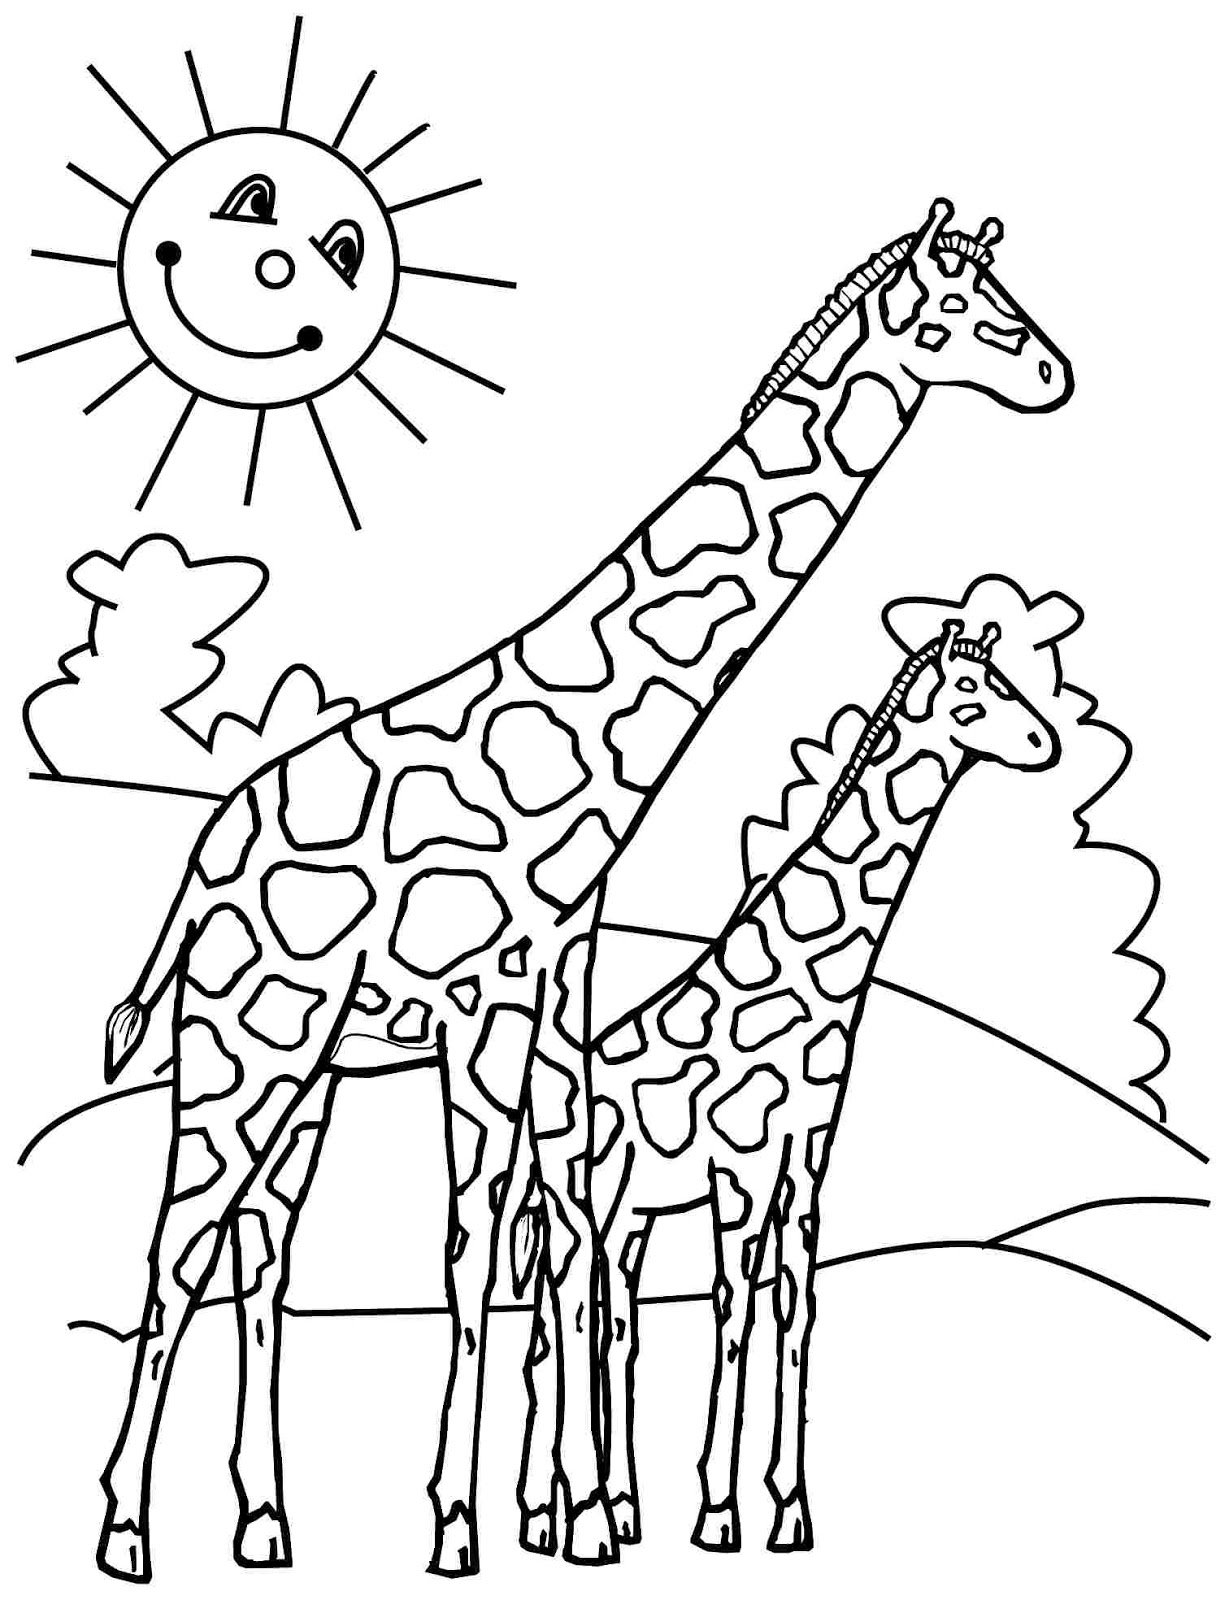 Giraffe Line Drawing At Getdrawings Com Free For